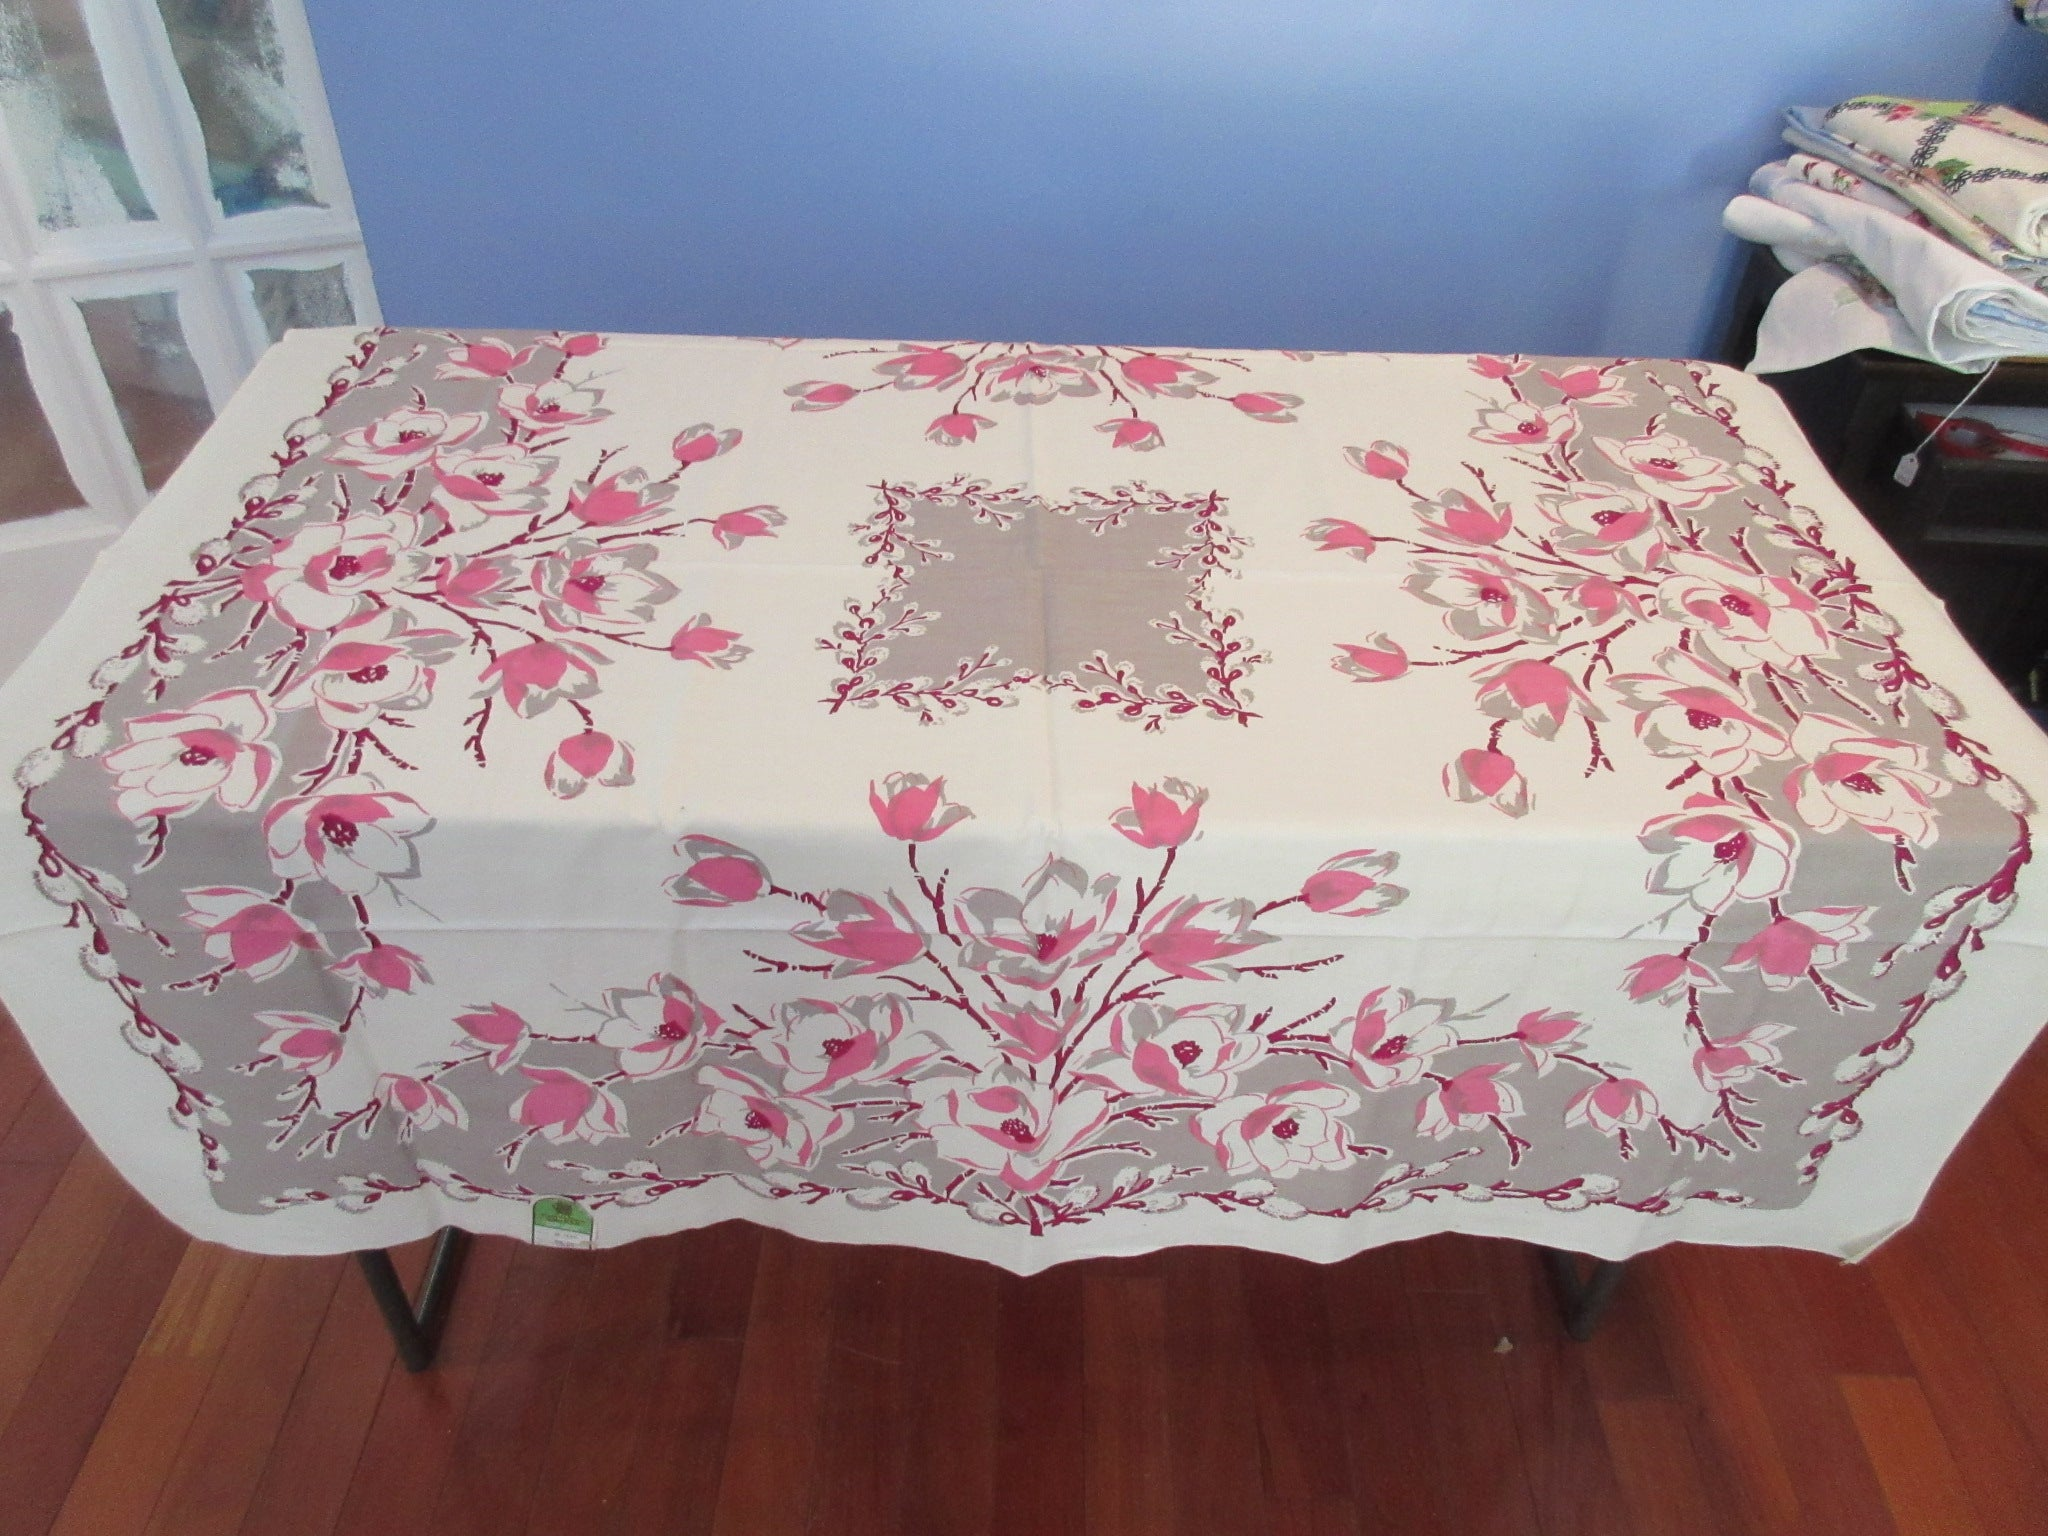 EARLY Magnolias Pussy Willows On Gray MWT Floral Vintage Printed Tablecloth  (51 X 49)